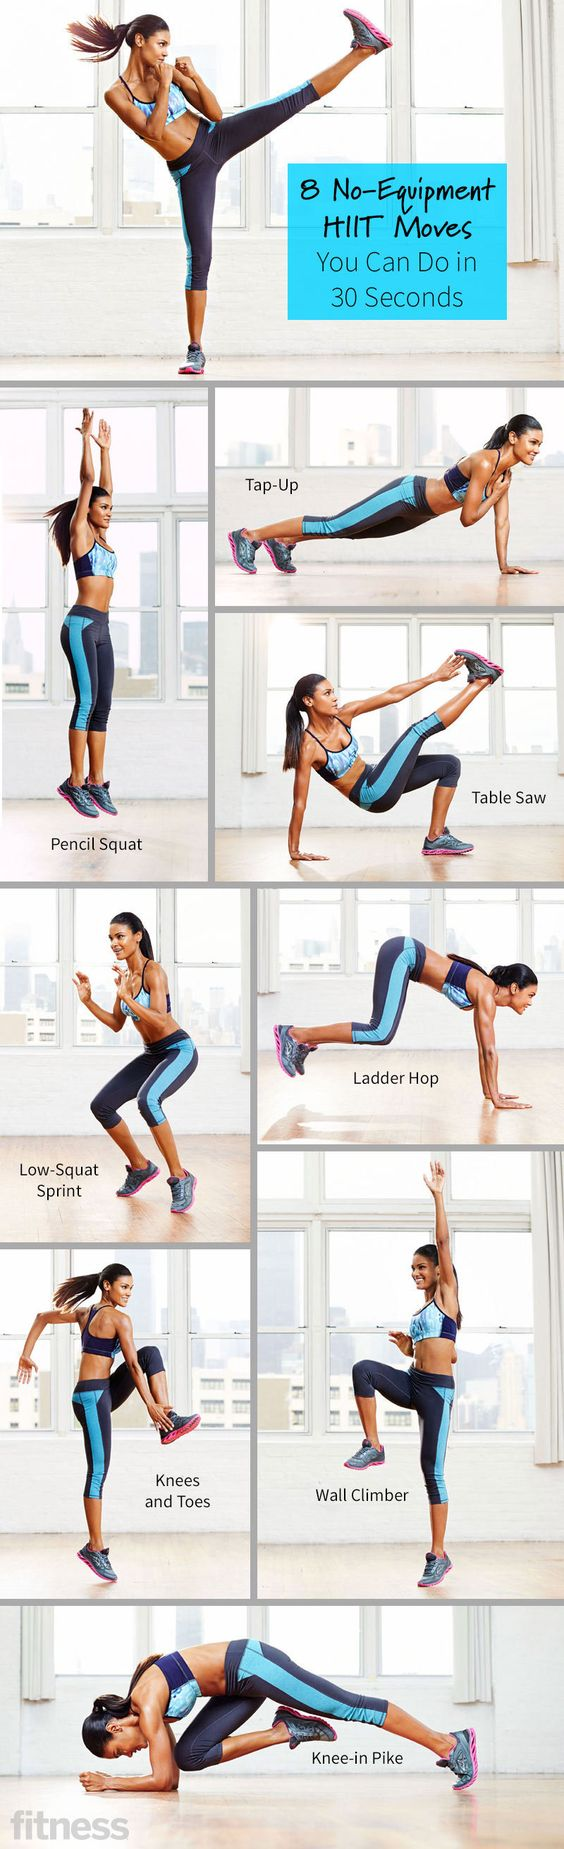 8 No-Equipment HIIT Moves You Can Do in 30 Seconds